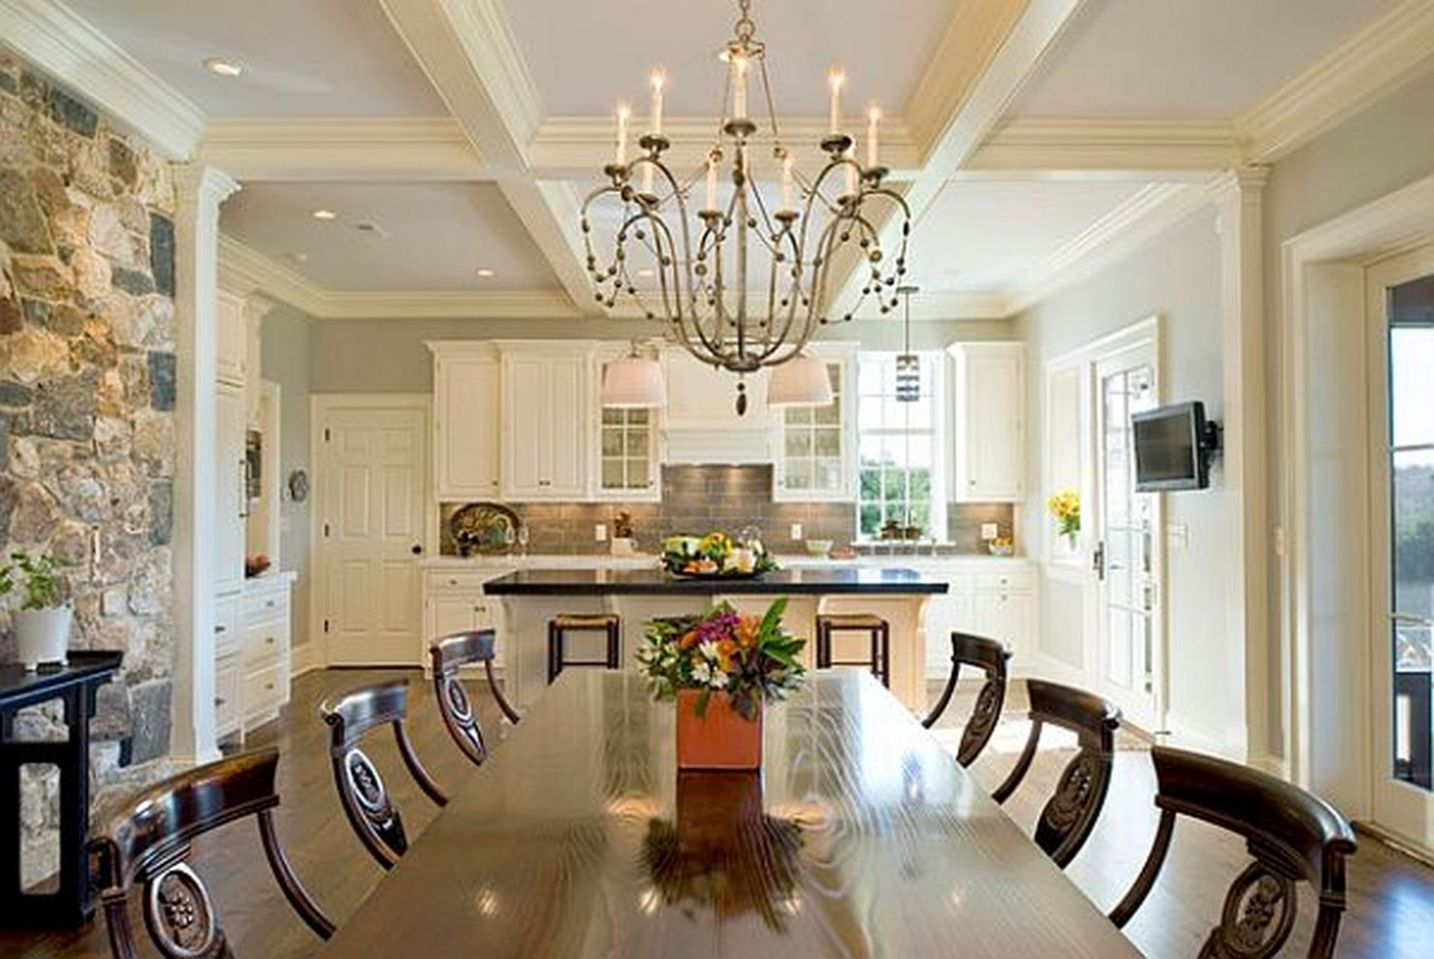 10 Amazing Dining Room Lights Ideas for Low Ceilings - ROUNDECOR